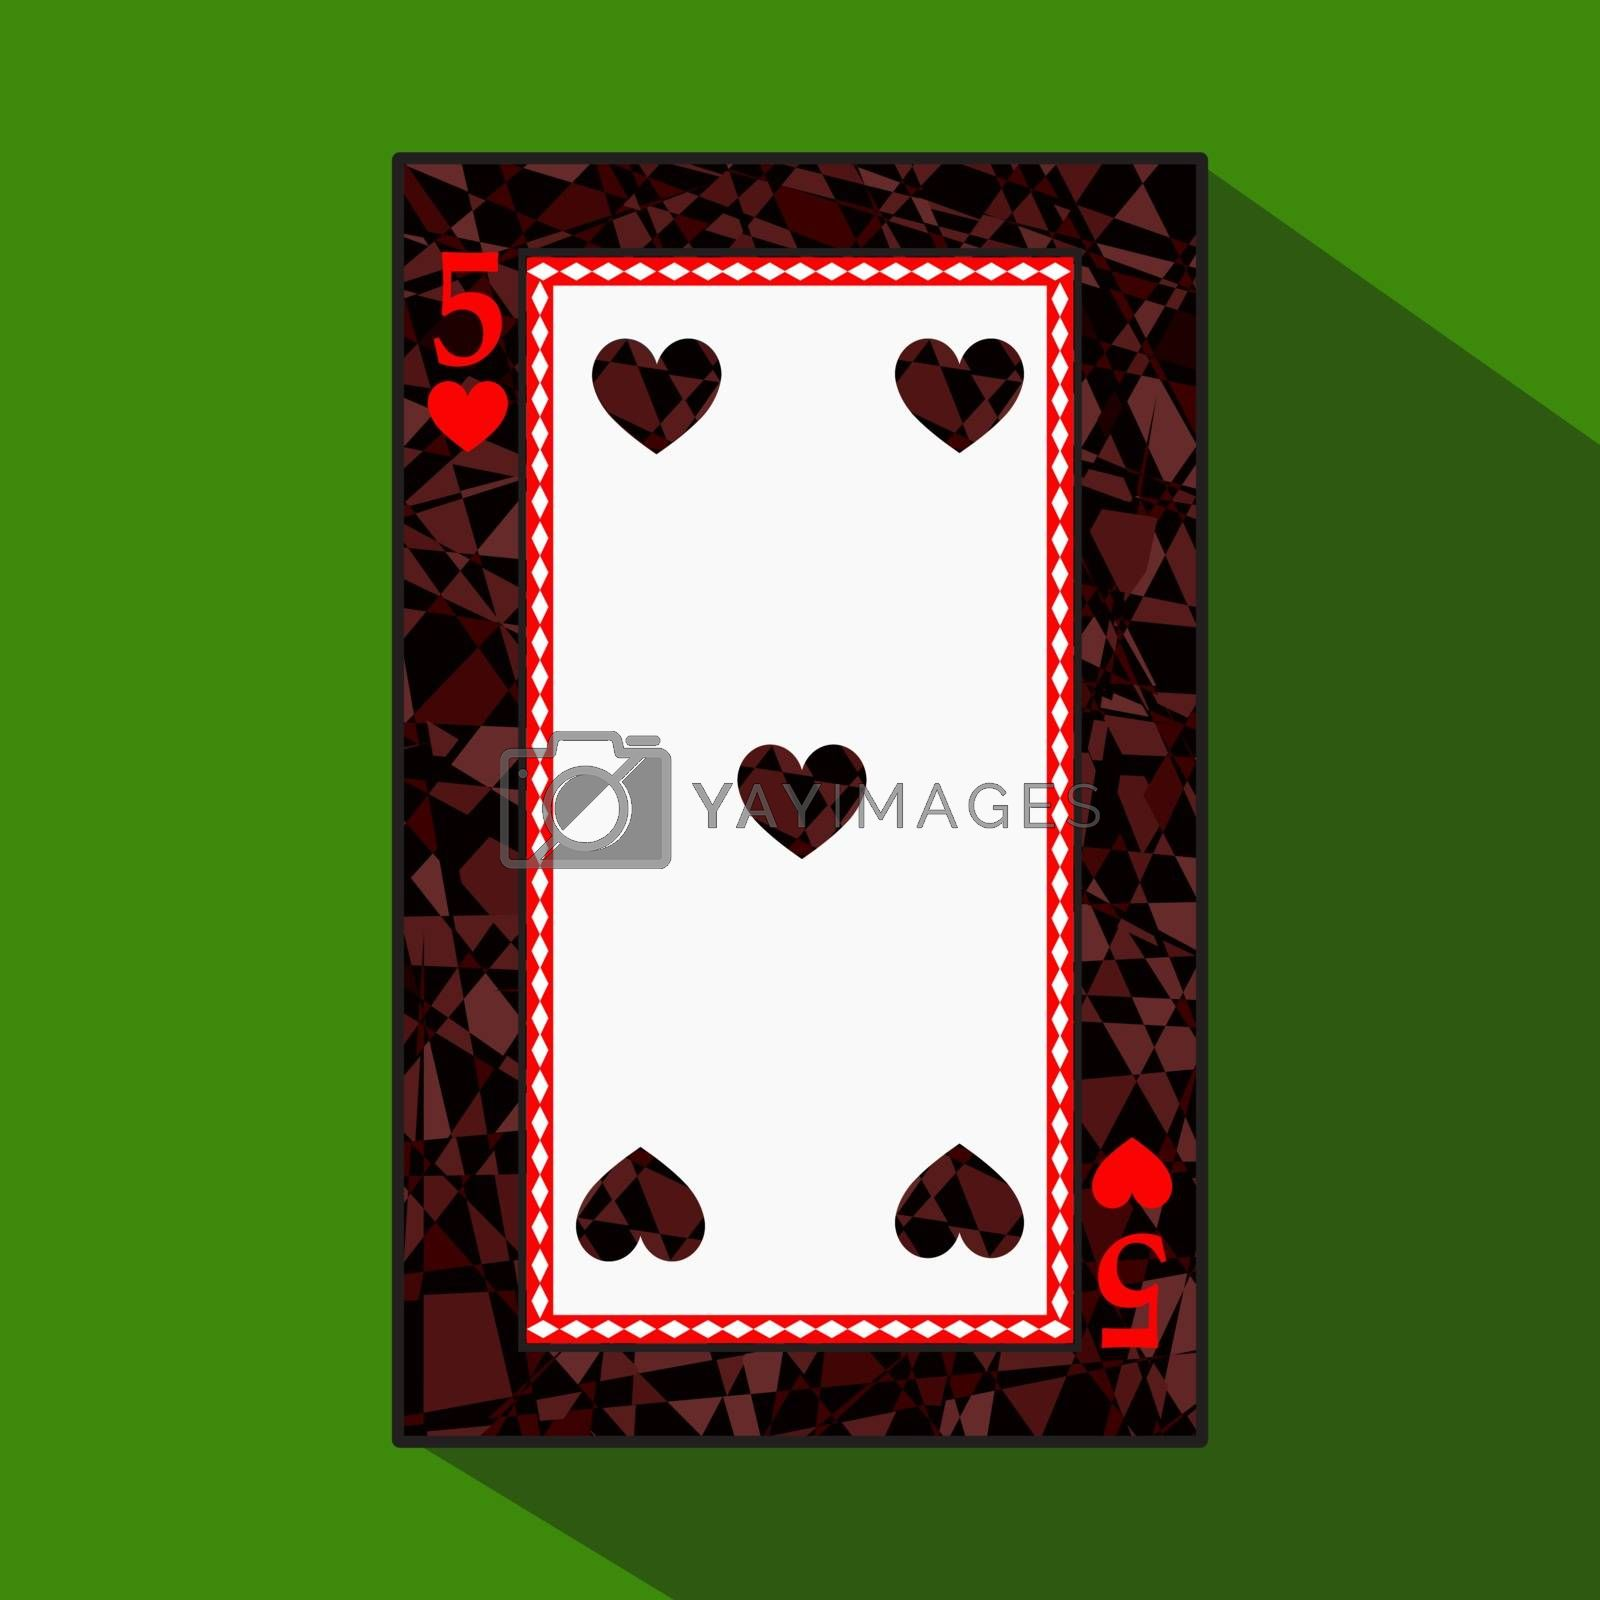 playing card. the icon picture is easy. HEART FOUR 5 about dark region boundary. a vector illustration on a green background. application appointment for website, press, t-shirt, fabric, interior, registration, design